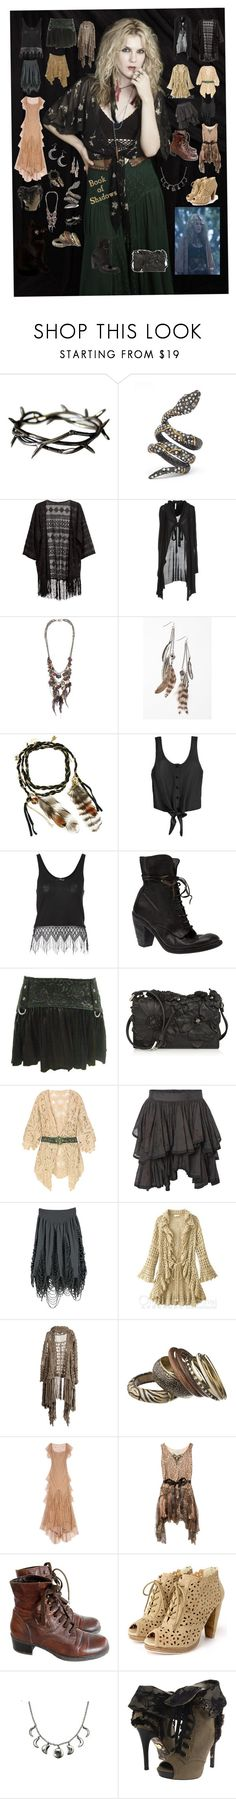 """Misty Day-Coven-American Horror Story"" by mrsmotionless ❤ liked on Polyvore featuring Alexis Bittar, H&M, Firetrap, AllSaints, Urban Outfitters, Disney Couture, Jane Norman, Guidi, Valentino and Cheap Monday"